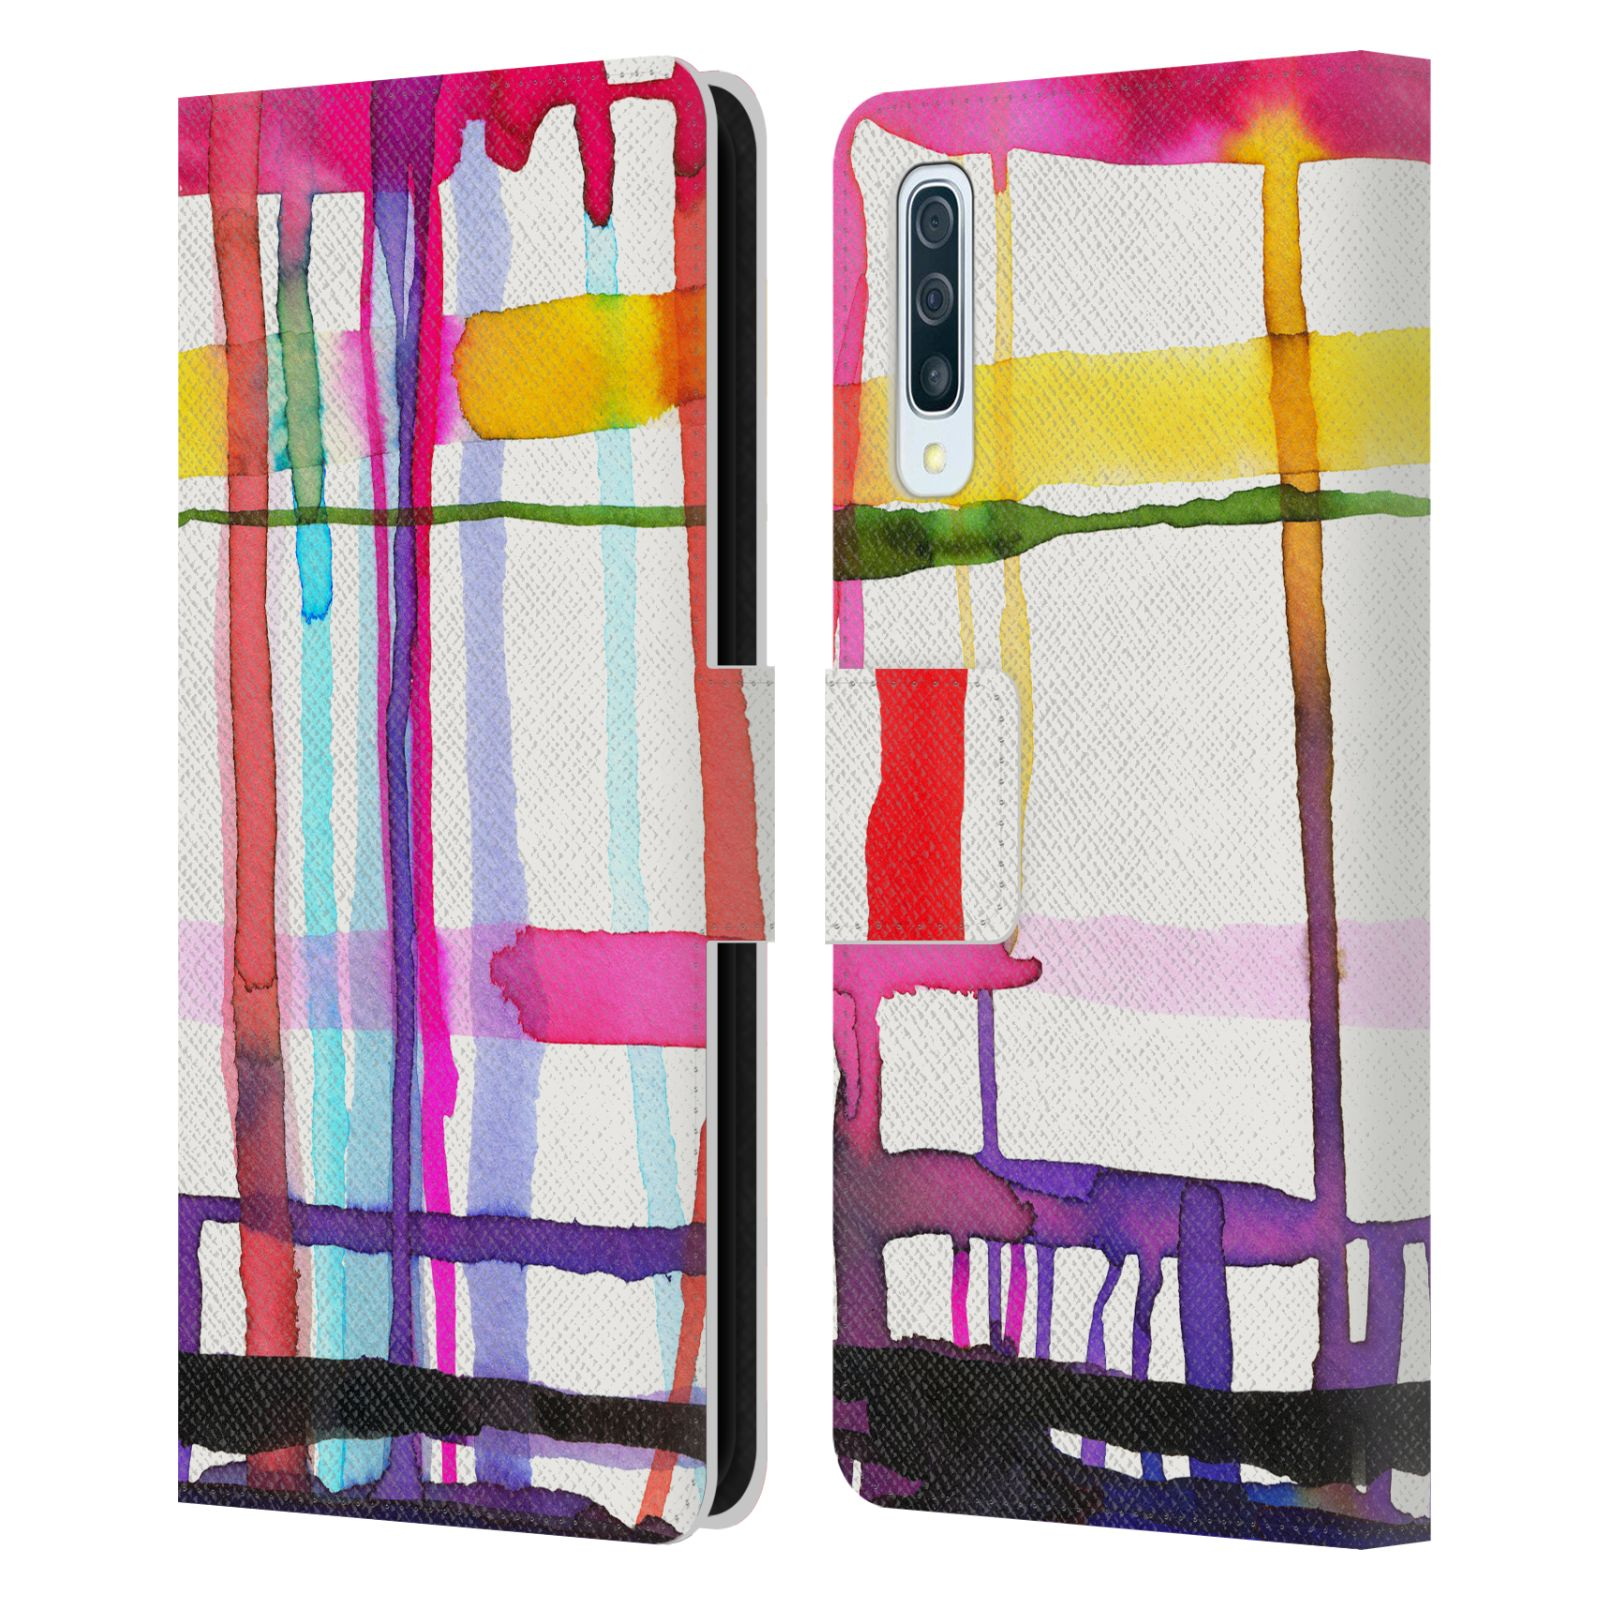 Official Ninola Abstract Lines Watercolour Geometry Leather Book Wallet Case For Samsung Galaxy A50/A30s (2019)